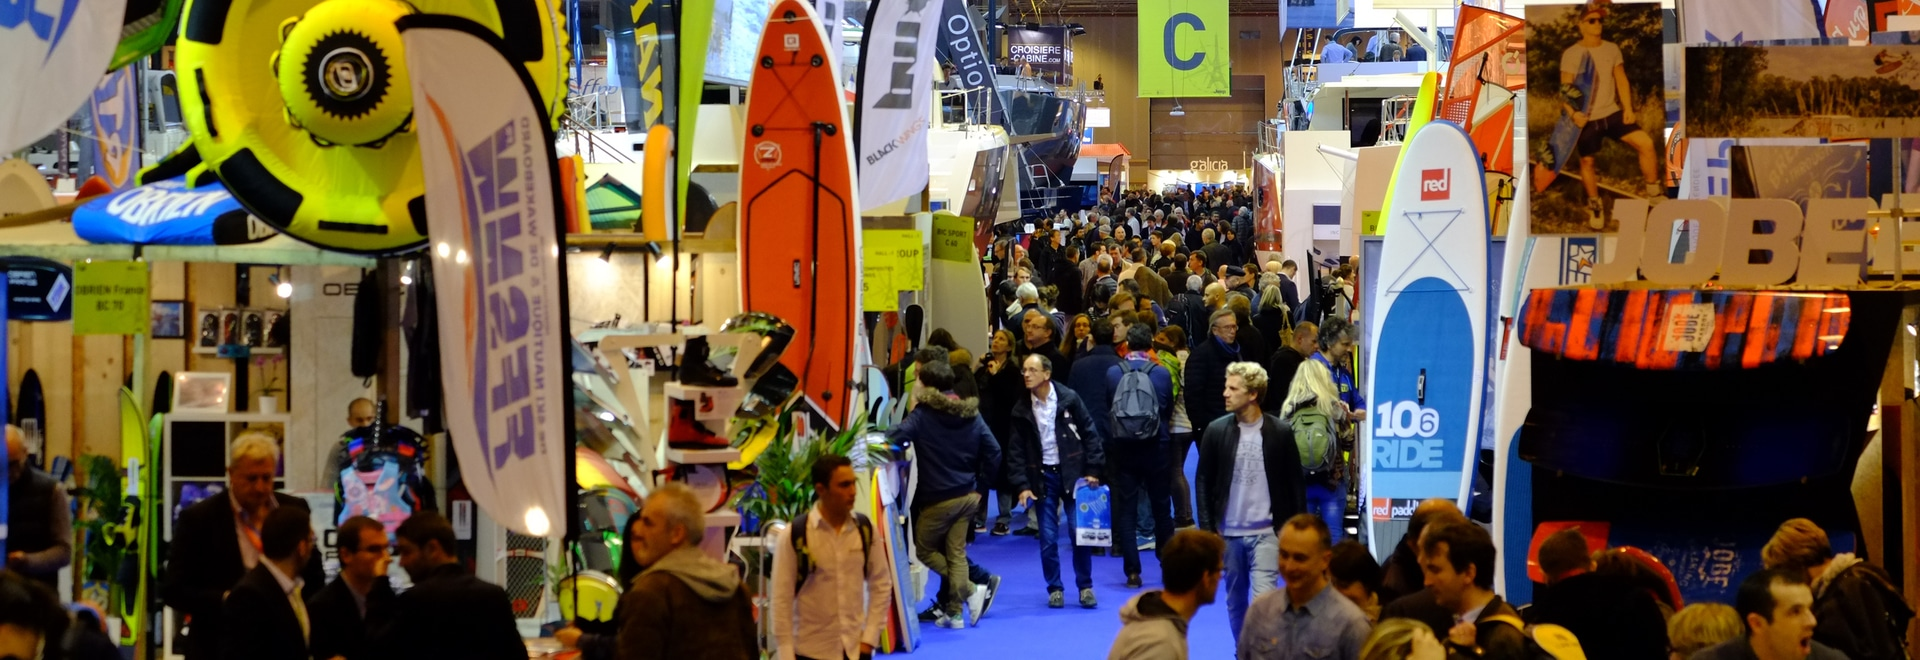 The Nautic Boat Show is starting a fresh in 2016